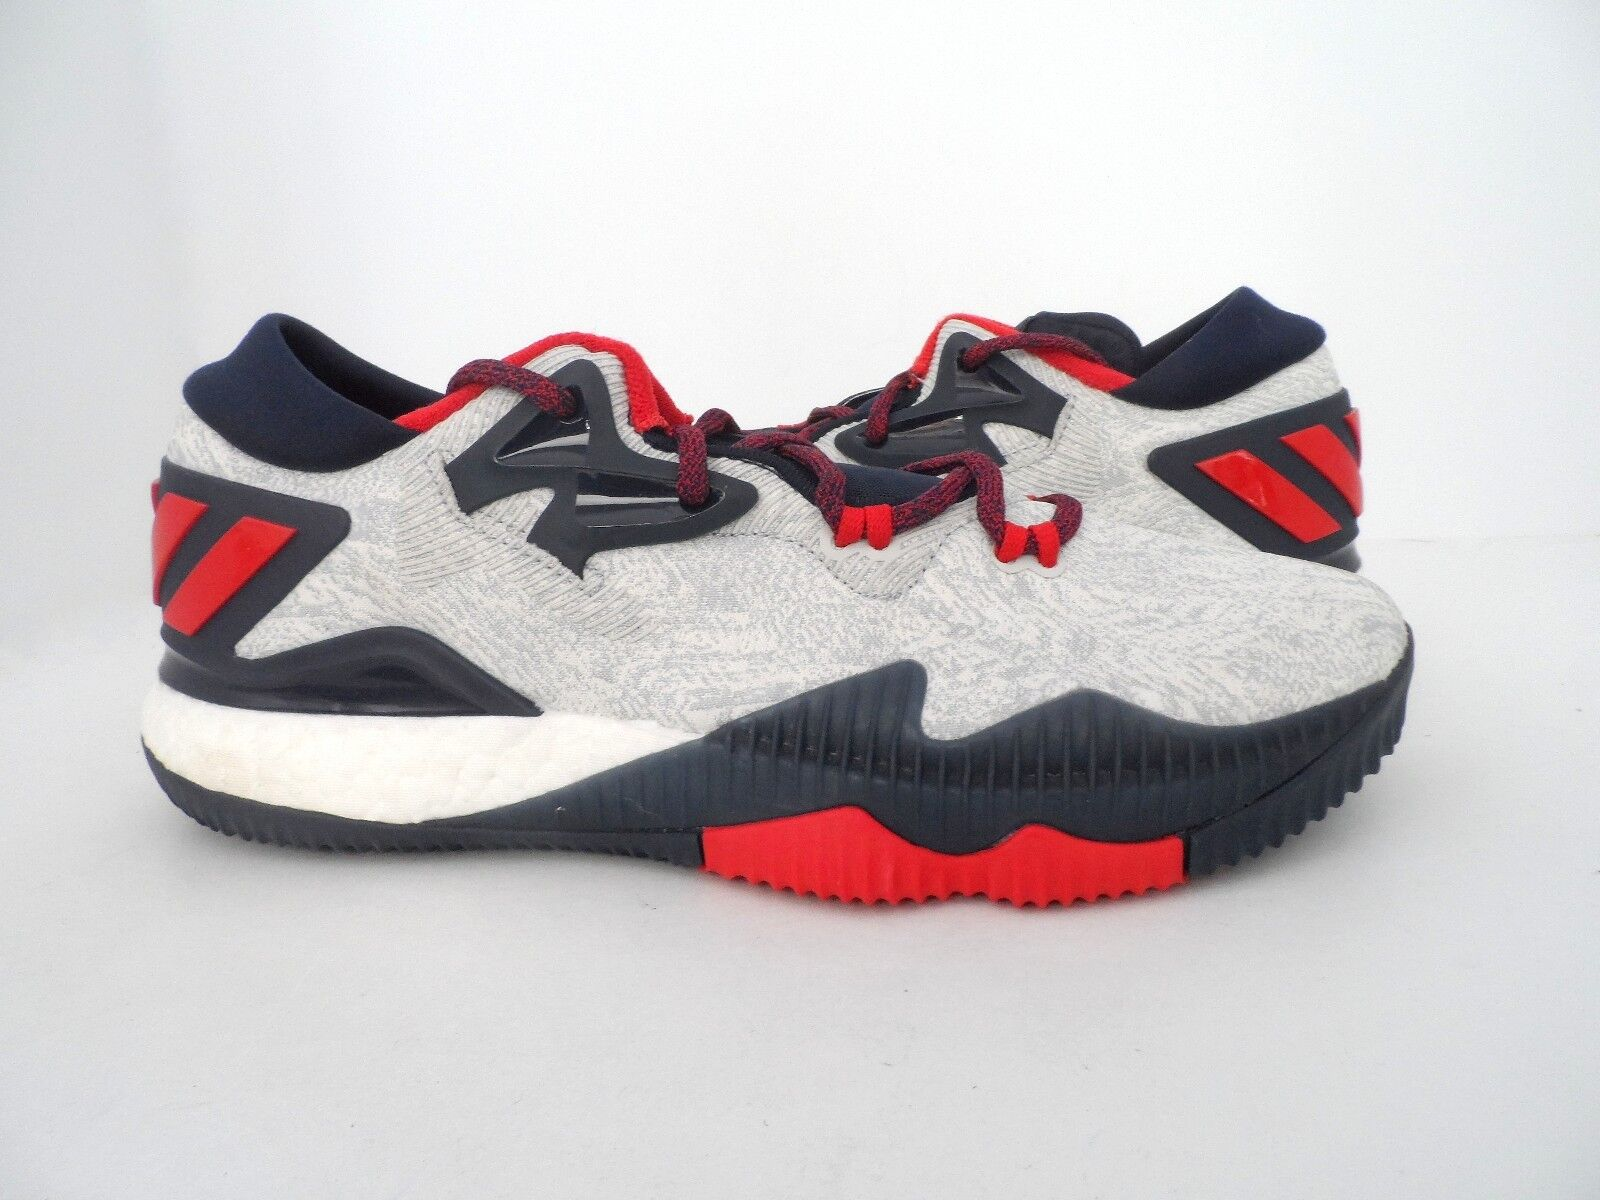 Adidas Men's Crazylight Boost Low 2016 Basketball shoes White Scarlet Navy 10.5